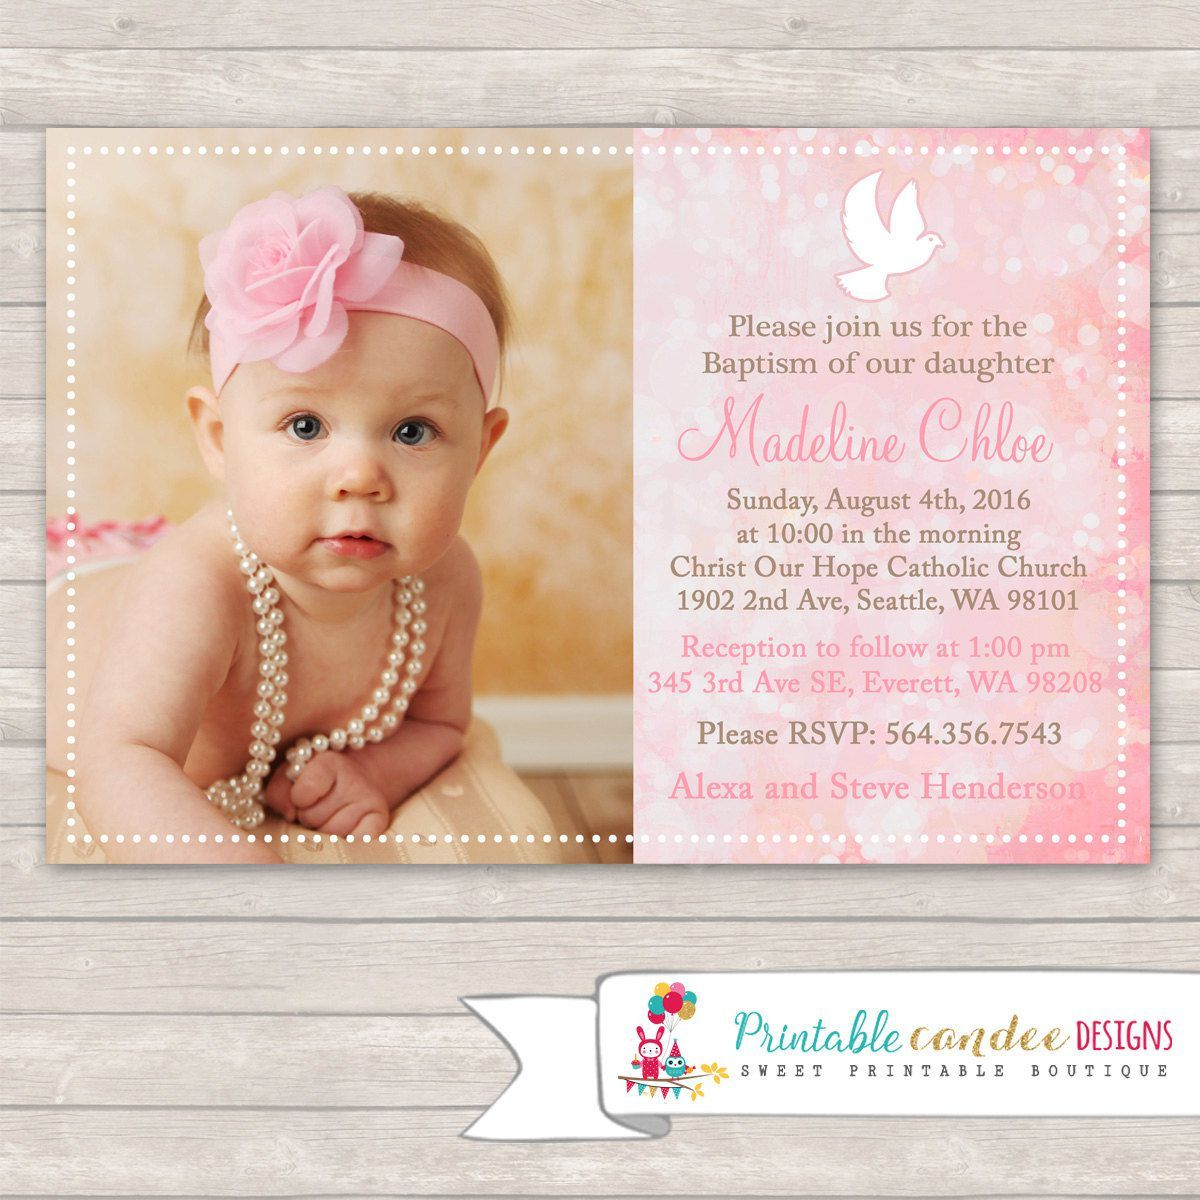 DELICATE LACE - BAPTISM & CHRISTENING INVITATIONS | christening ...